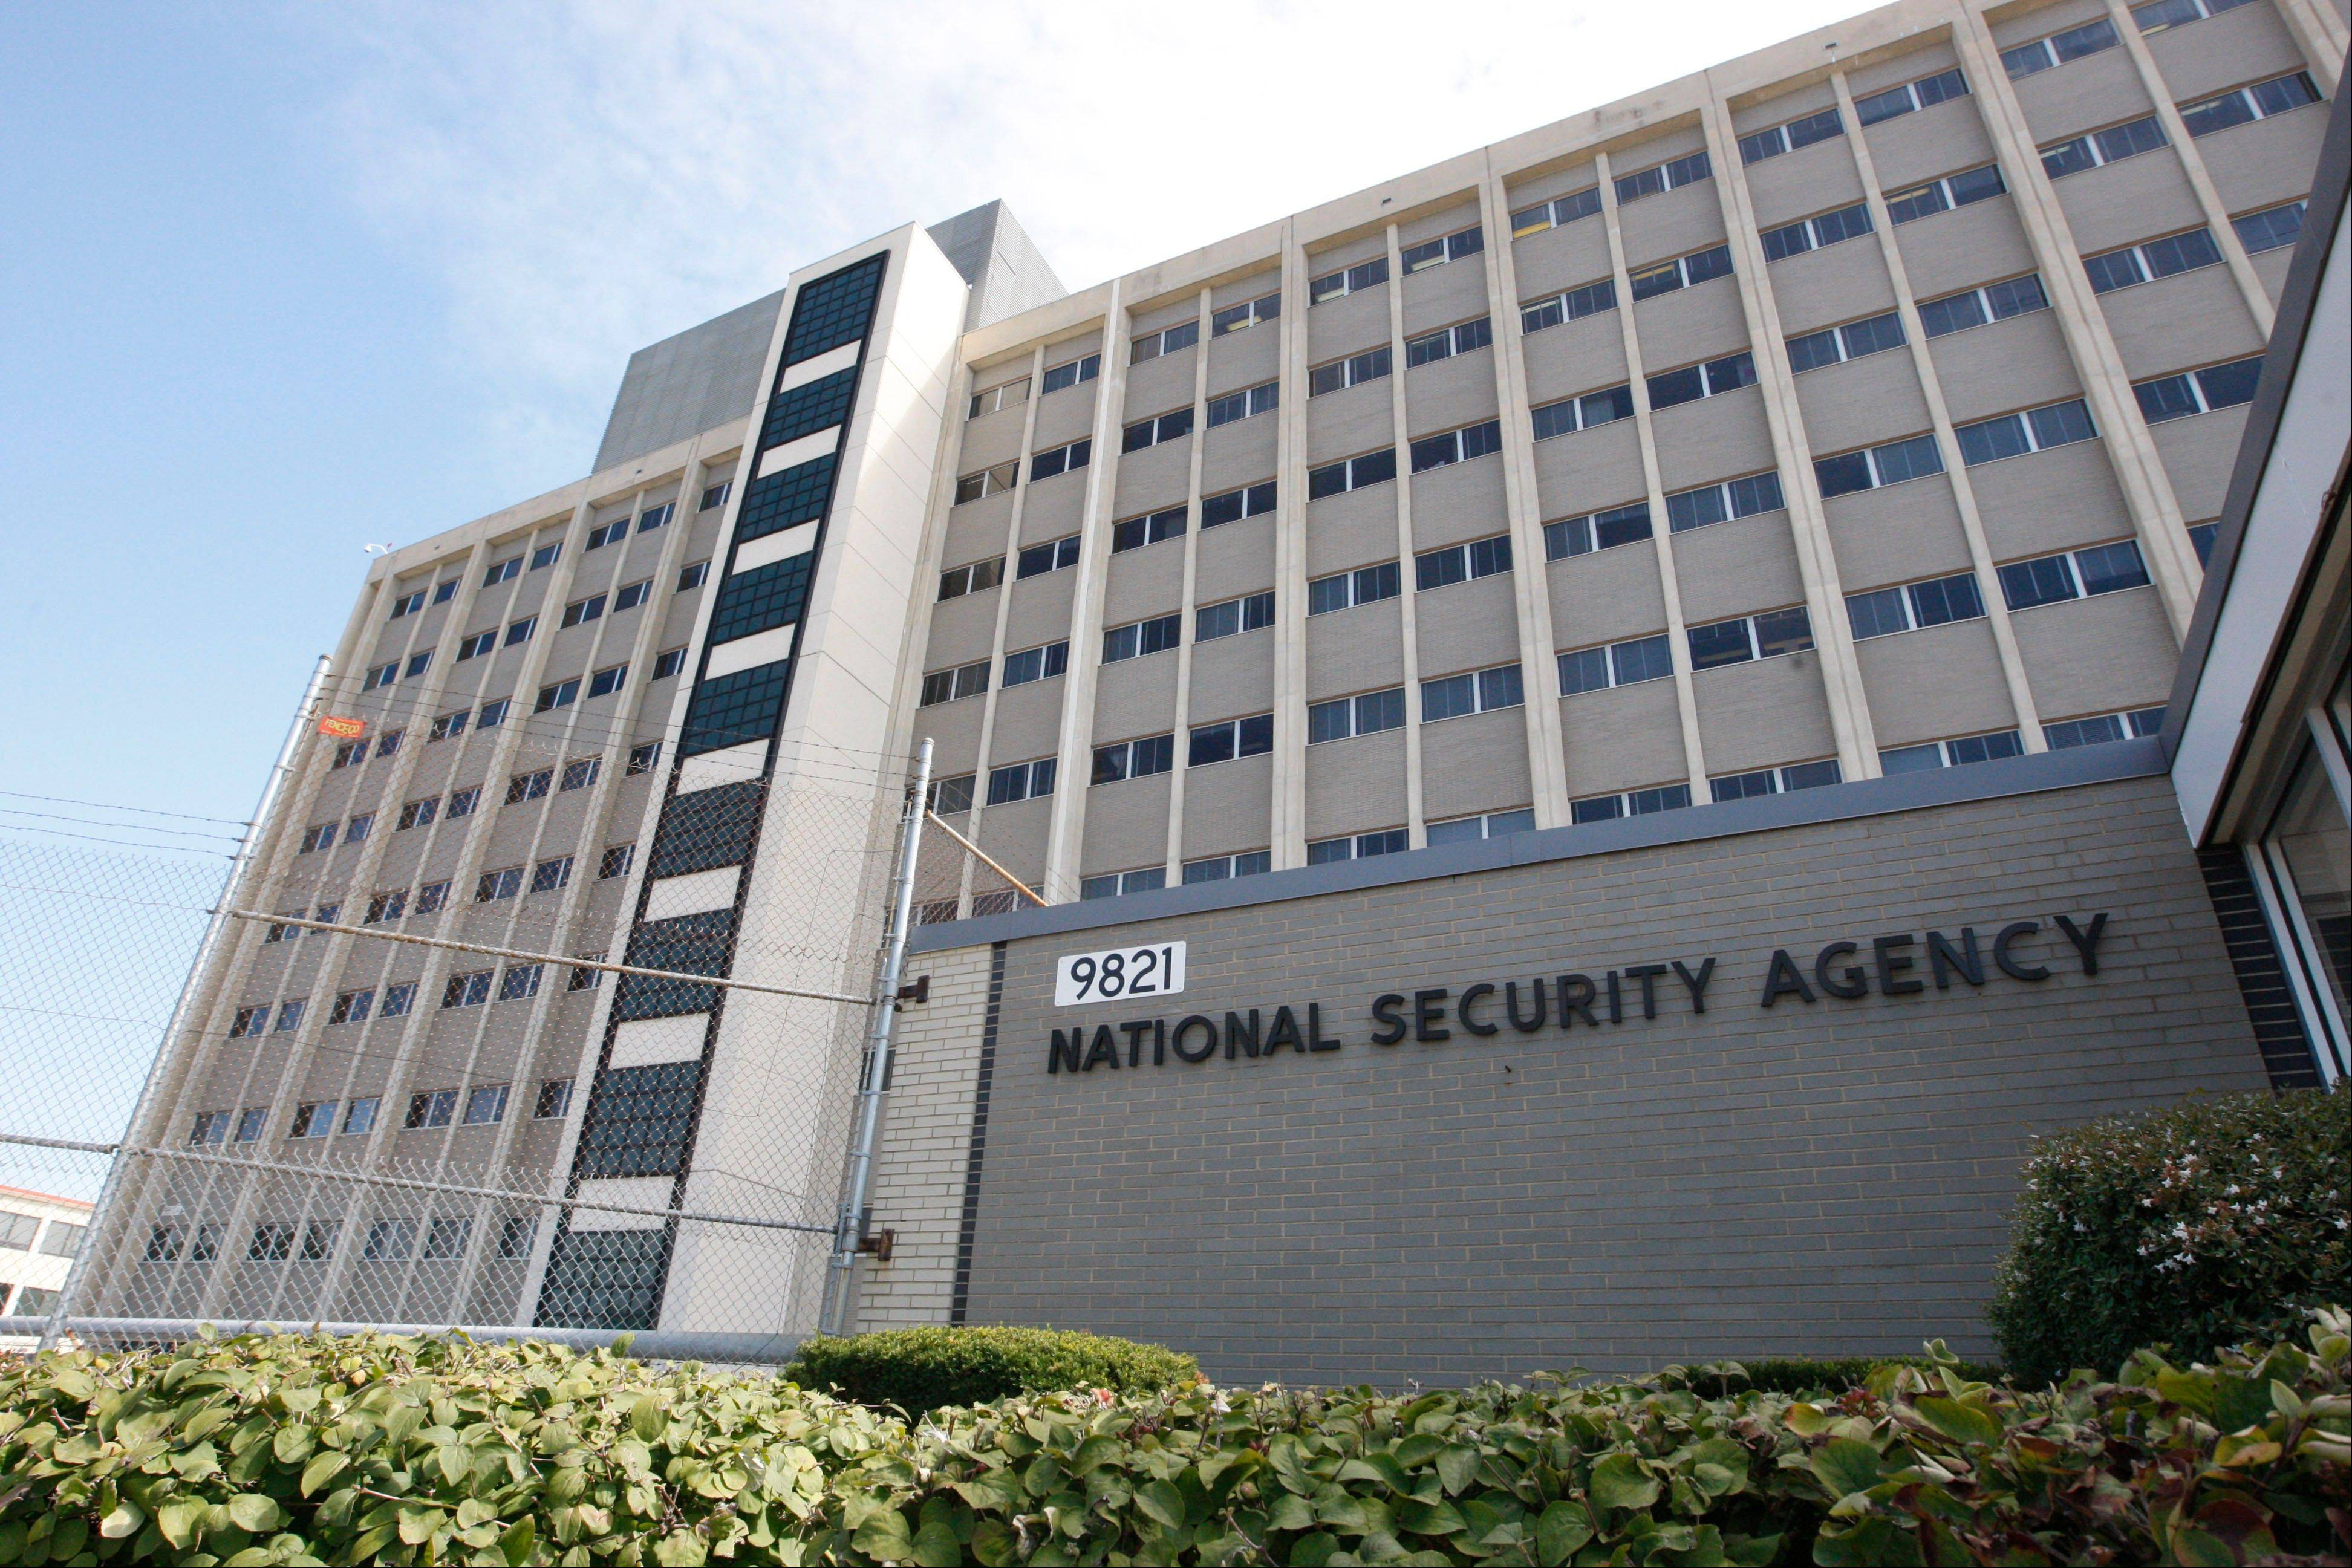 The National Security Agency has been extensively involved in the U.S. government's targeted killing program, collaborating closely with the CIA in the use of drone strikes against terrorists abroad, The Washington Post reported Wednesday Oct. 16, 2013 after a review of documents provided by former NSA systems analyst Edward Snowden.